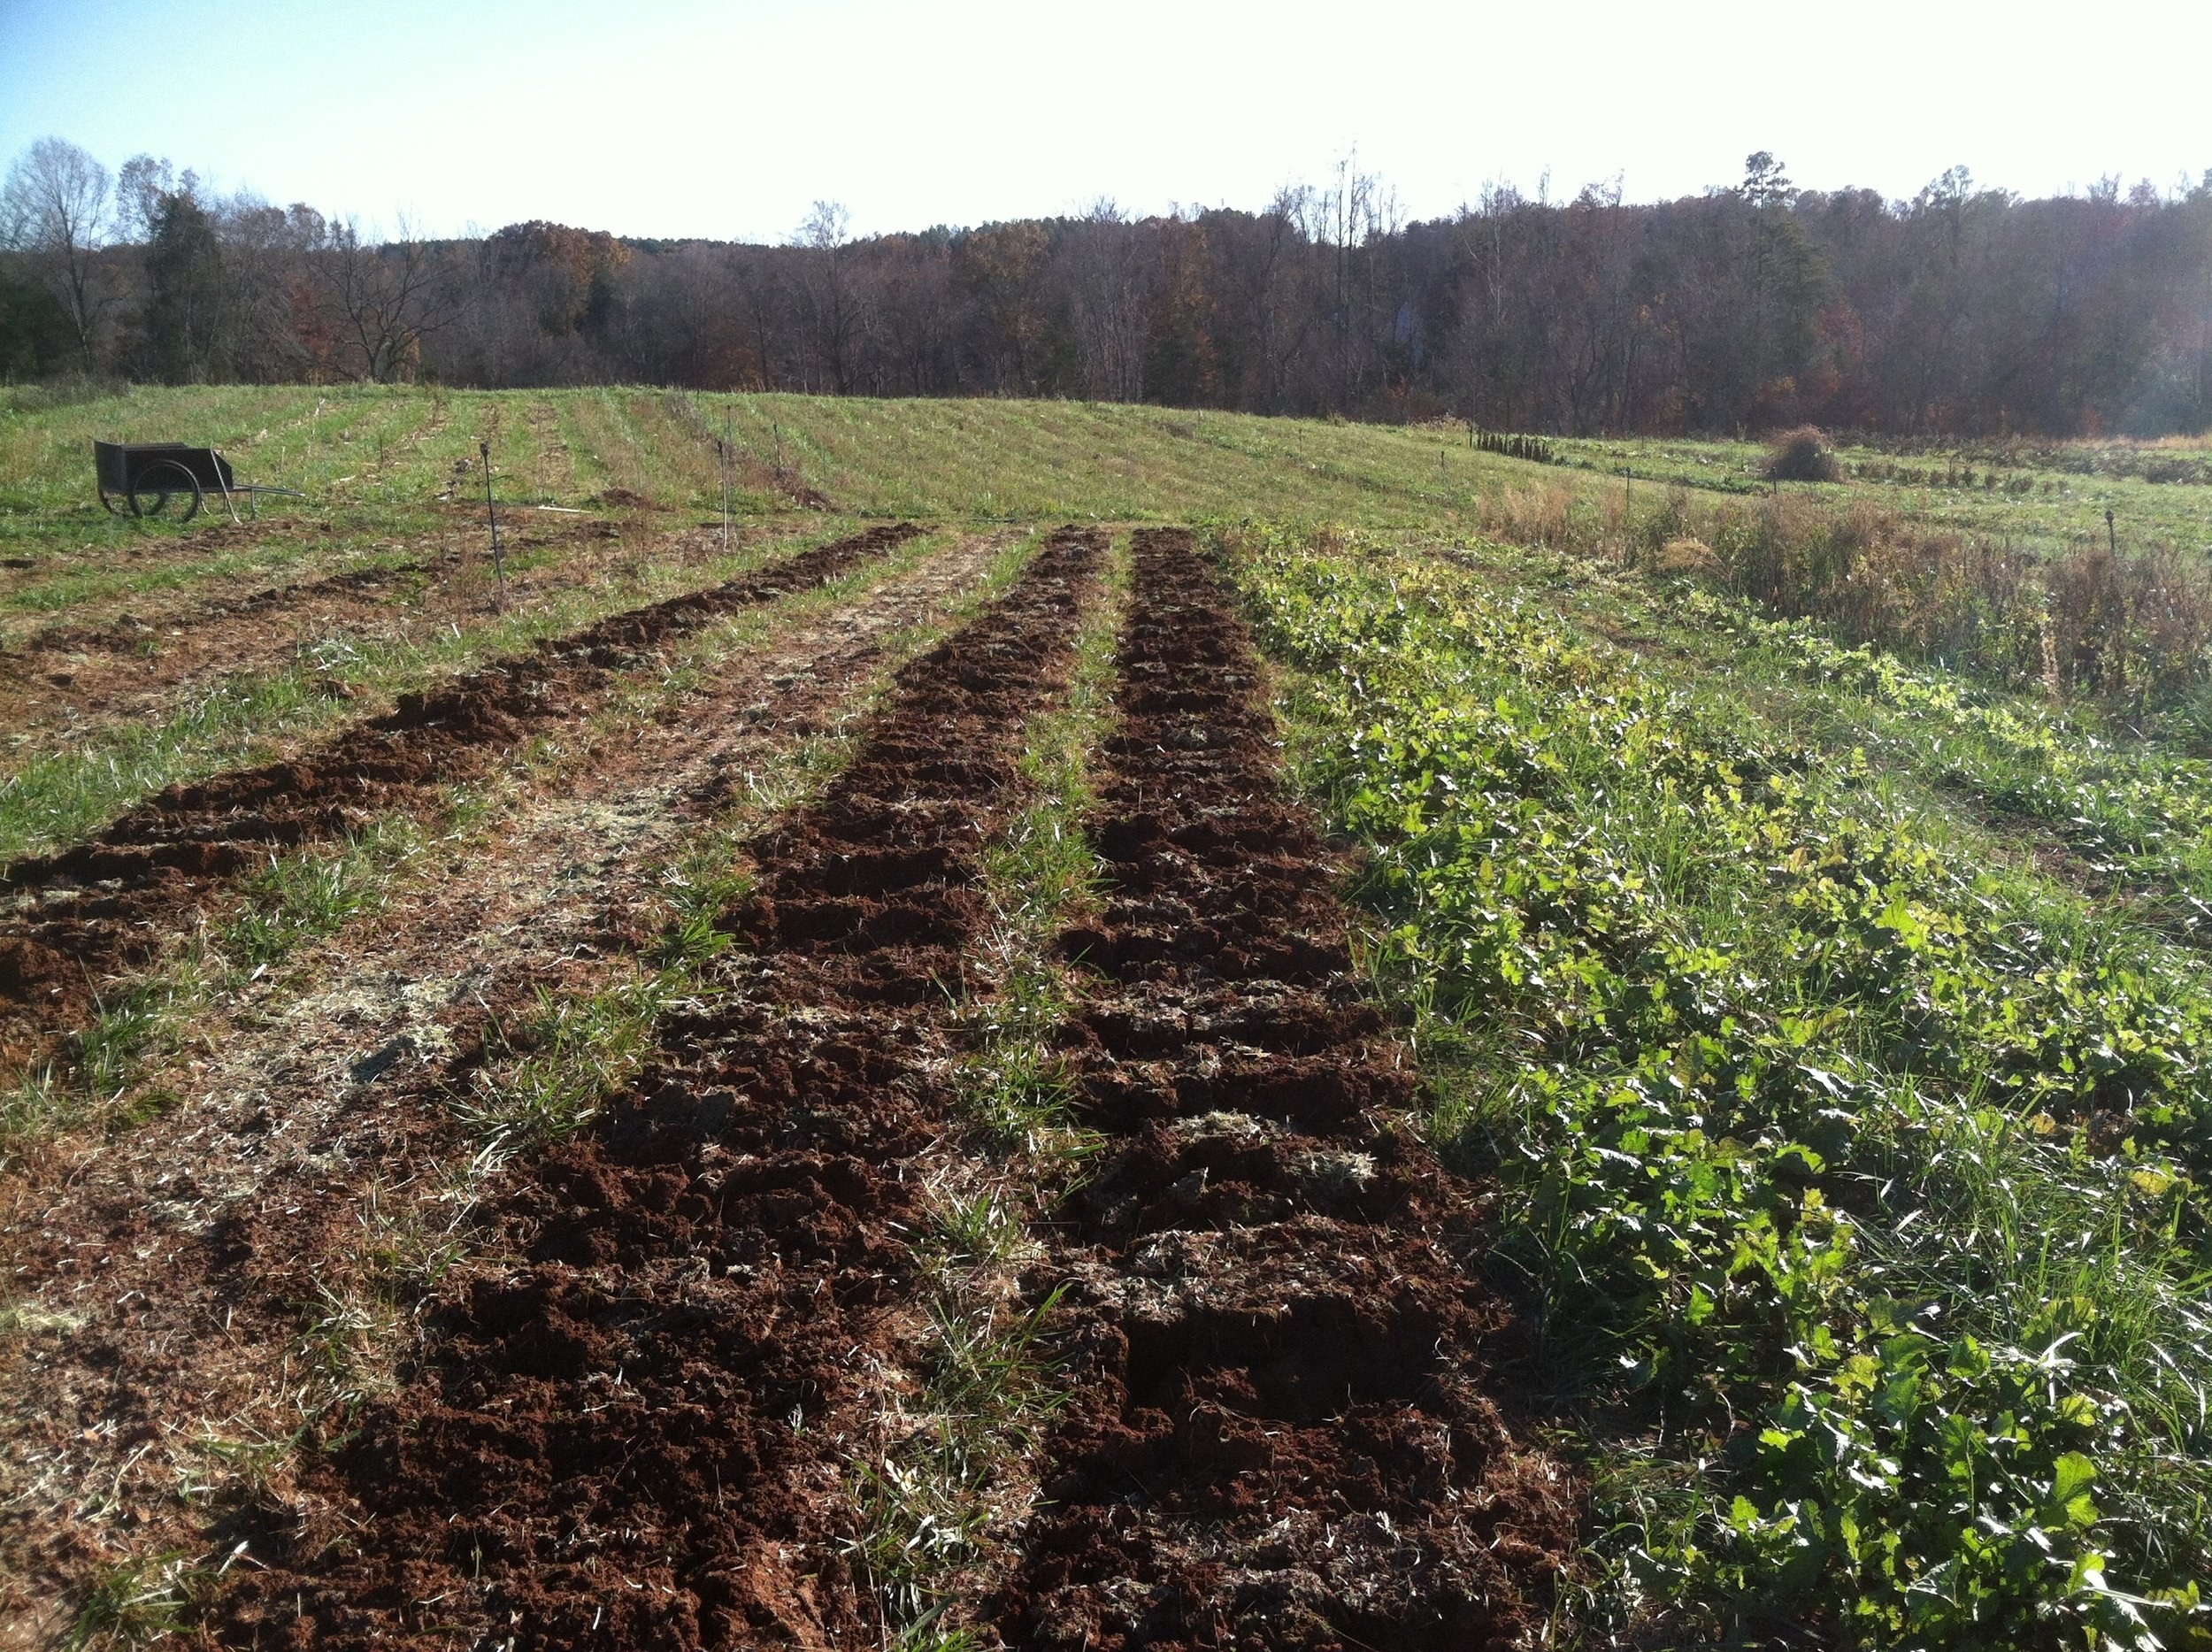 Starting to broadfork the garlic beds, which is a hopeful antidote to the drowning this spring.